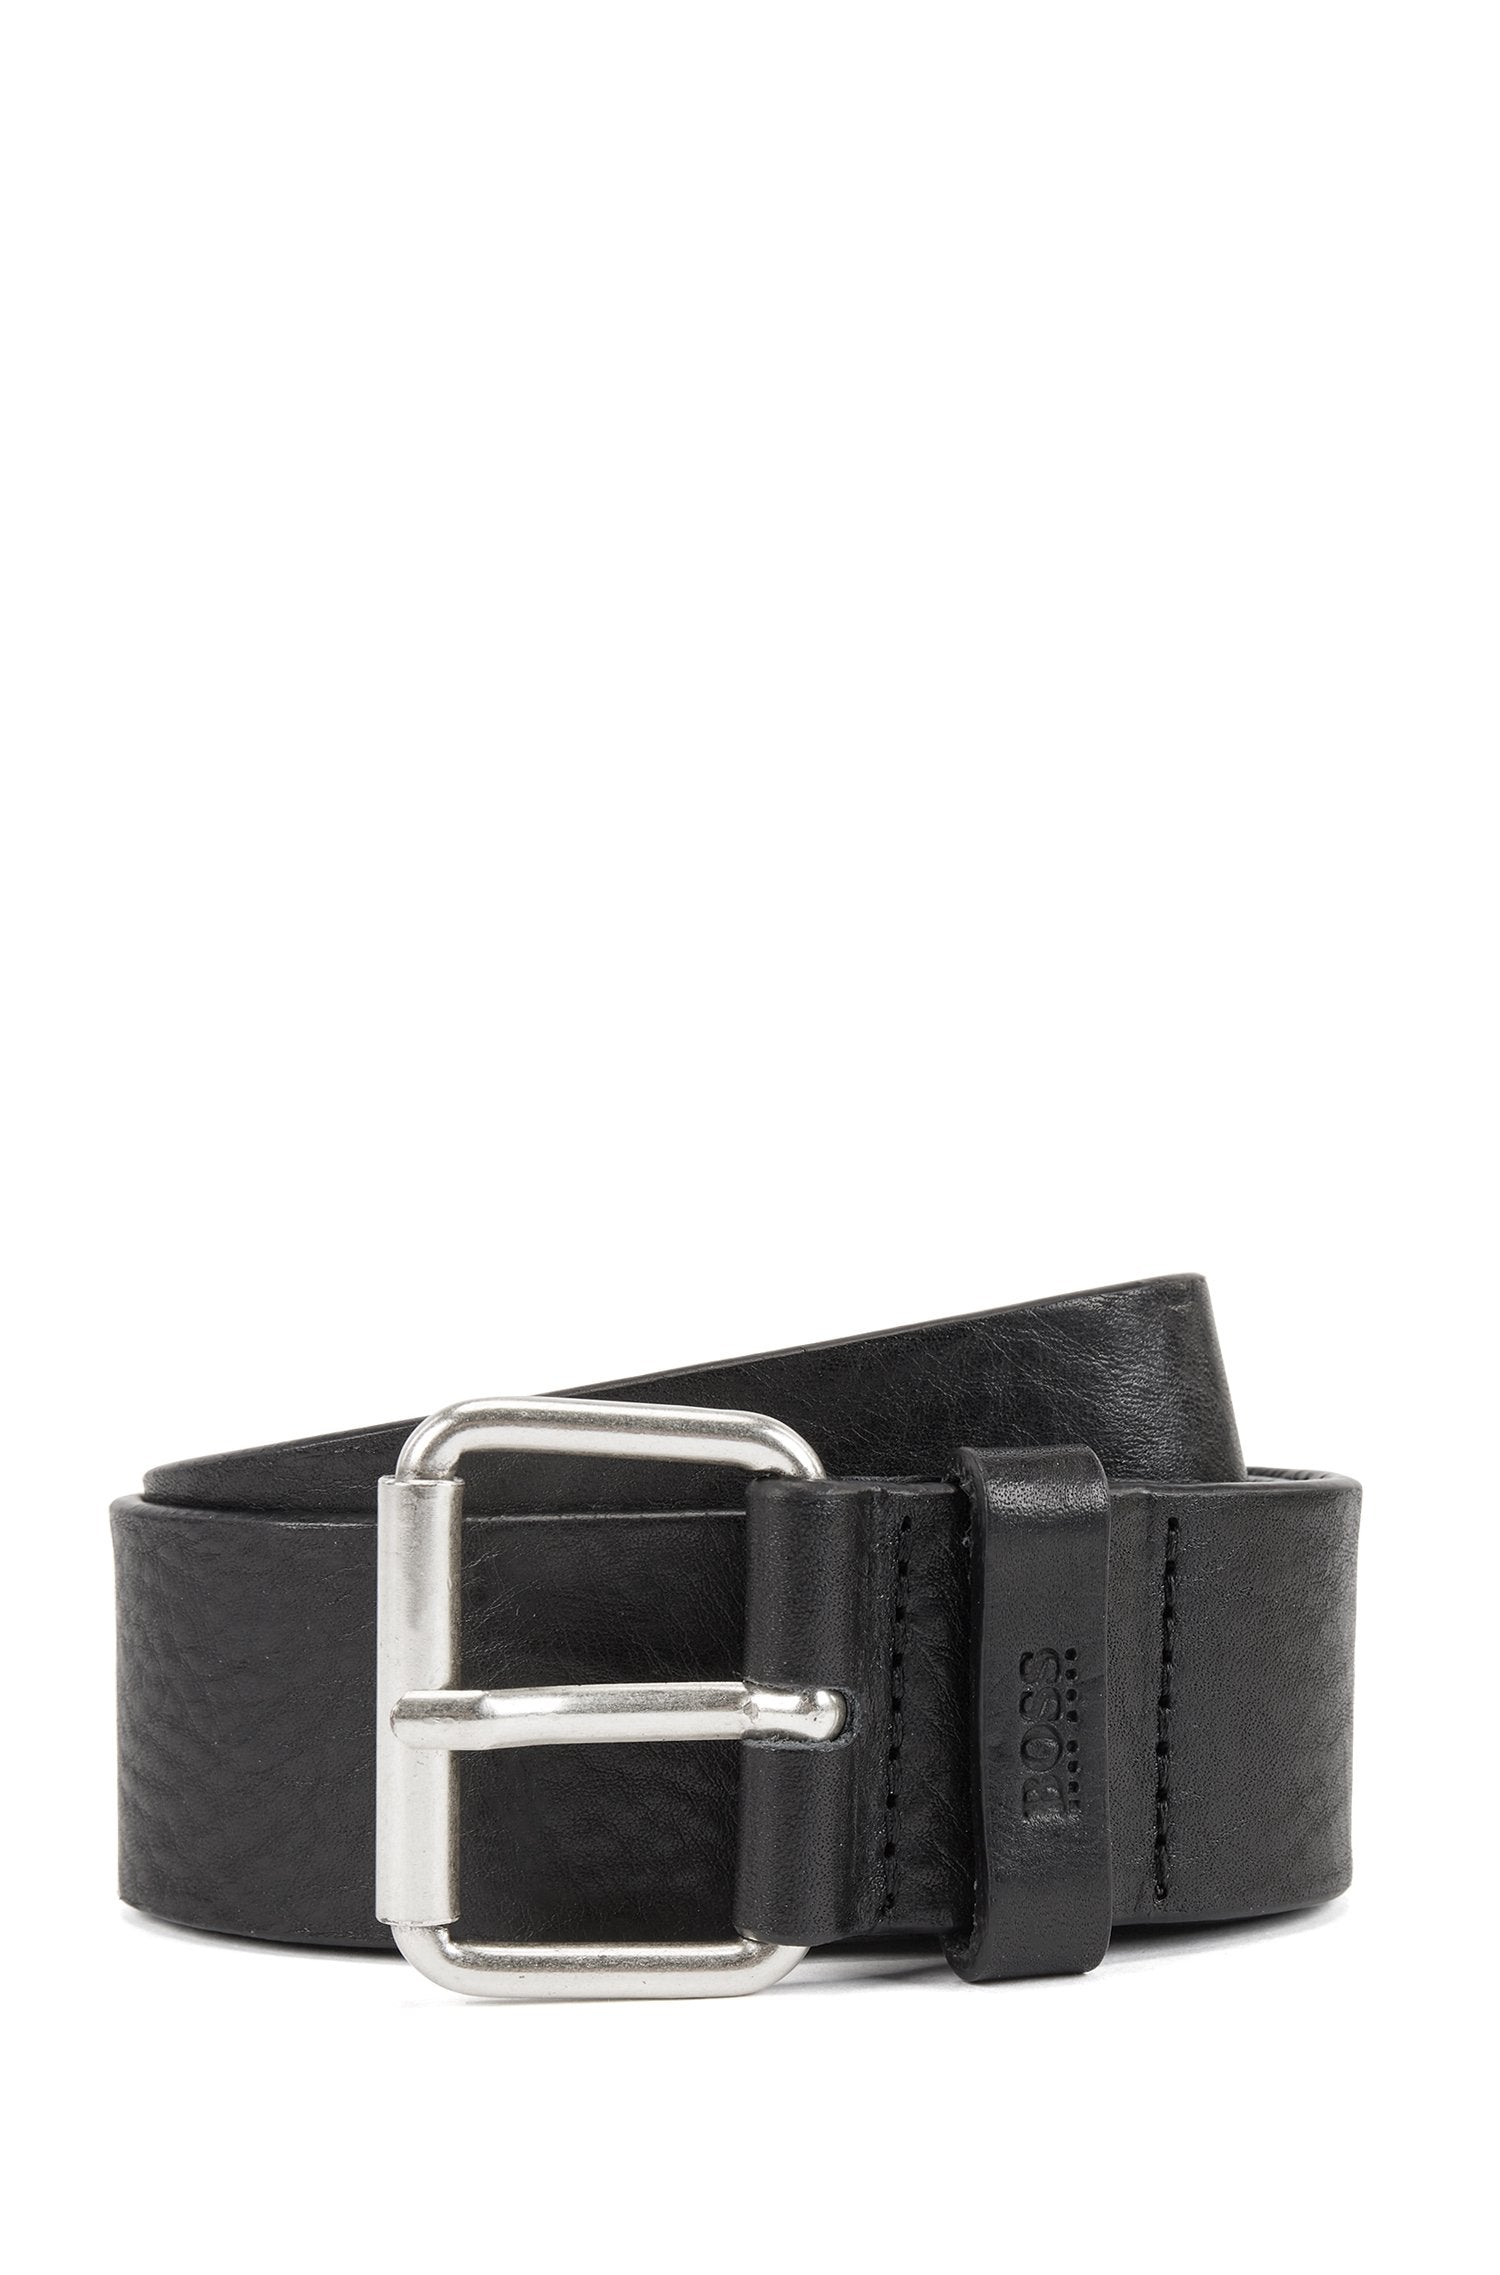 Vegetable-tanned leather belt with chisel tip Style Serge-VA_Sz40 - 50430052 BLack